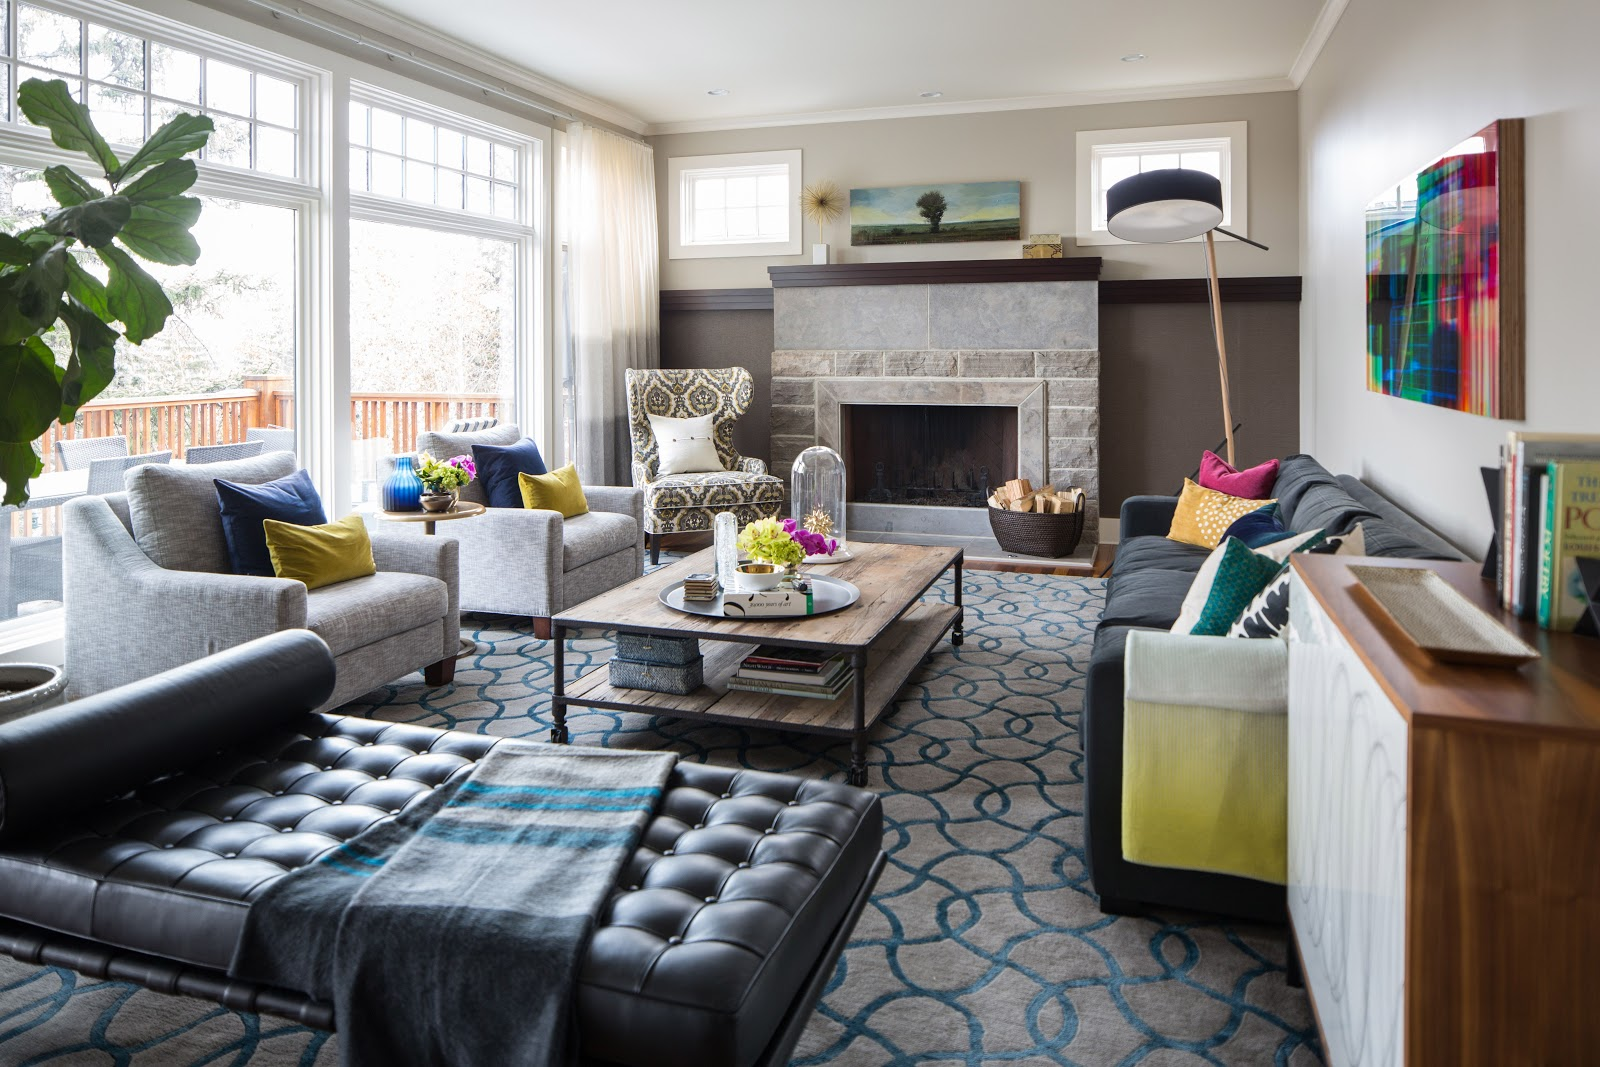 leanne bunnell interiors design in calgary living room custom designed area rug in turqoise and gray